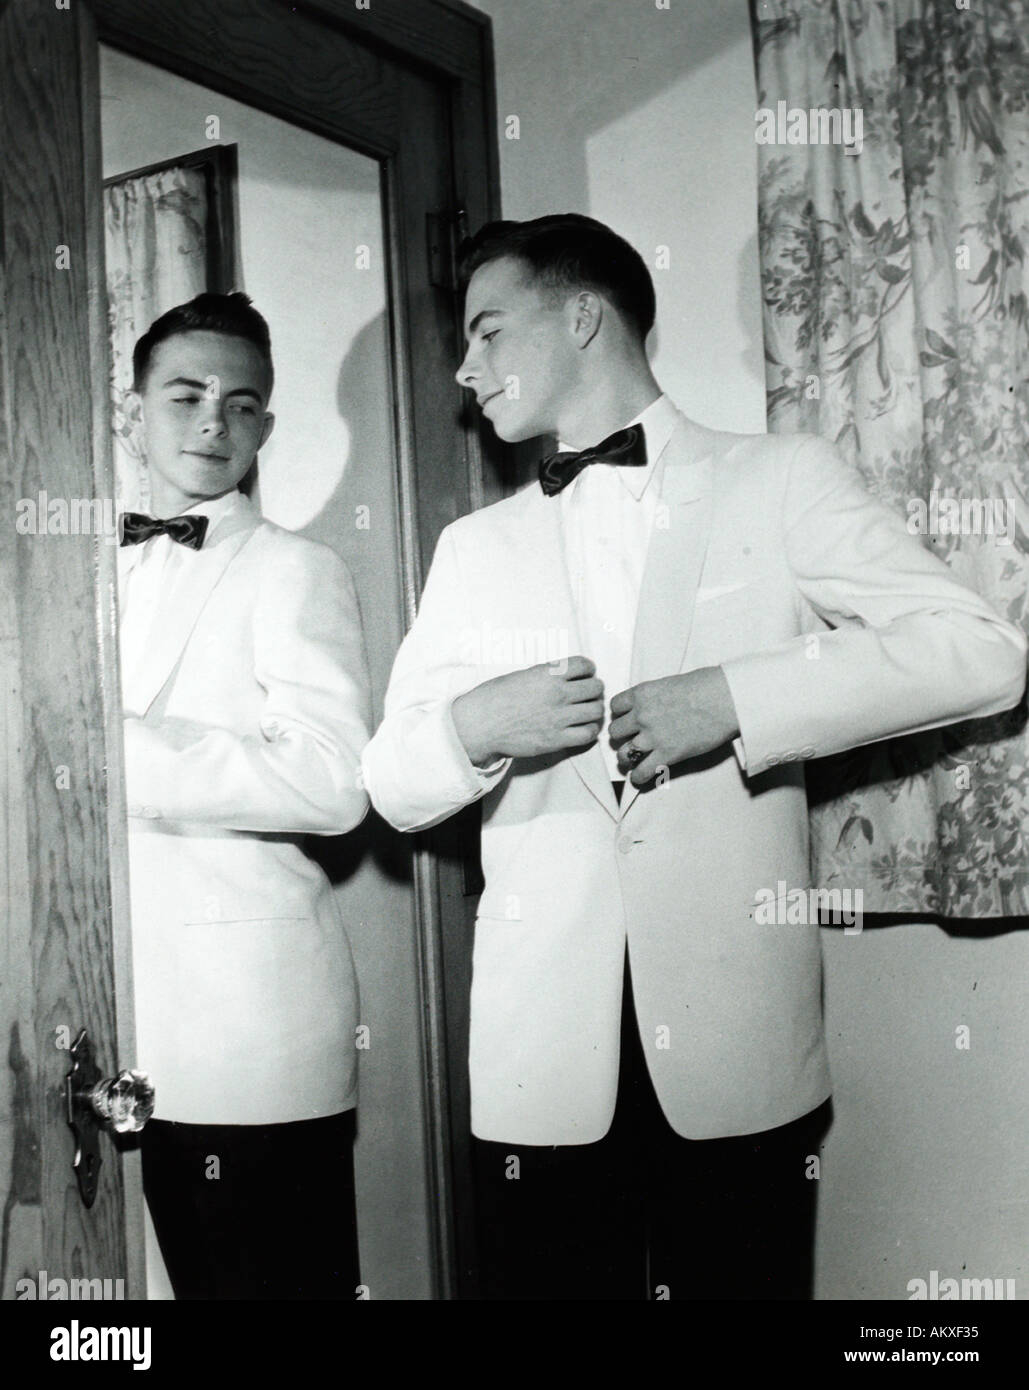 A teenage boy in a white tuxedo looking admiringly and confidently in mirror in 1950 s - Stock Image